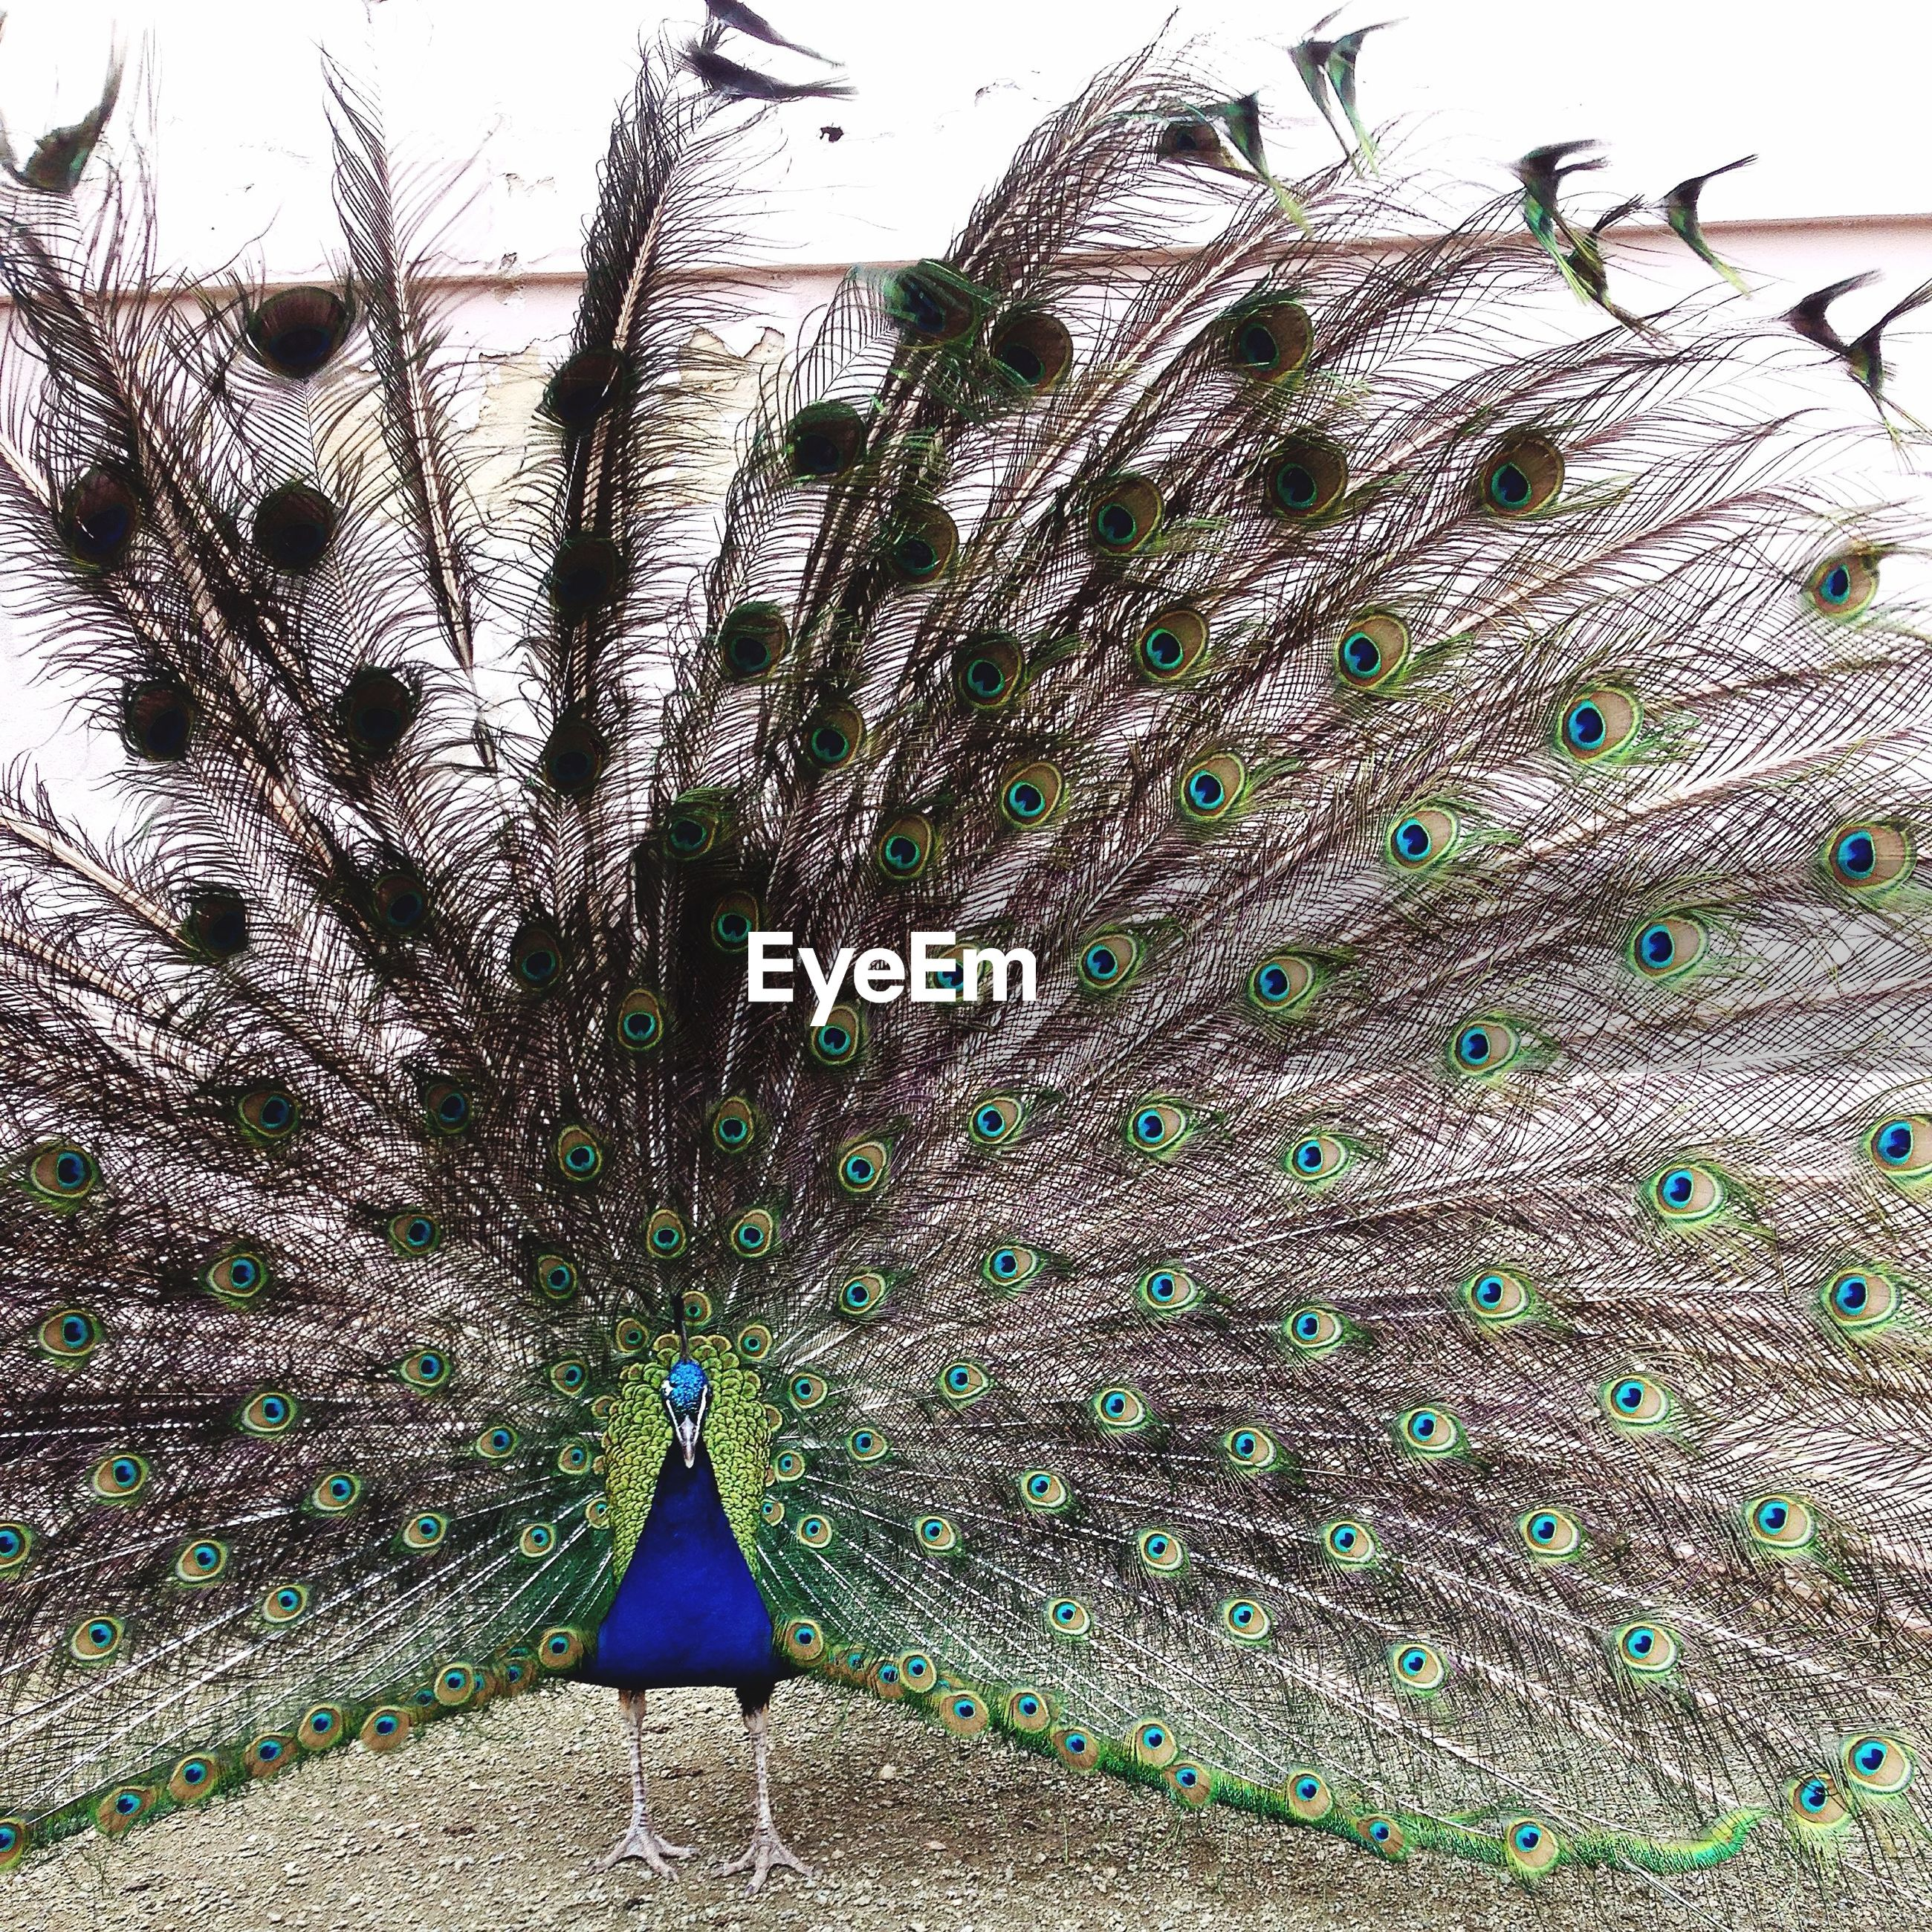 Peacock with feathers spread out on full display